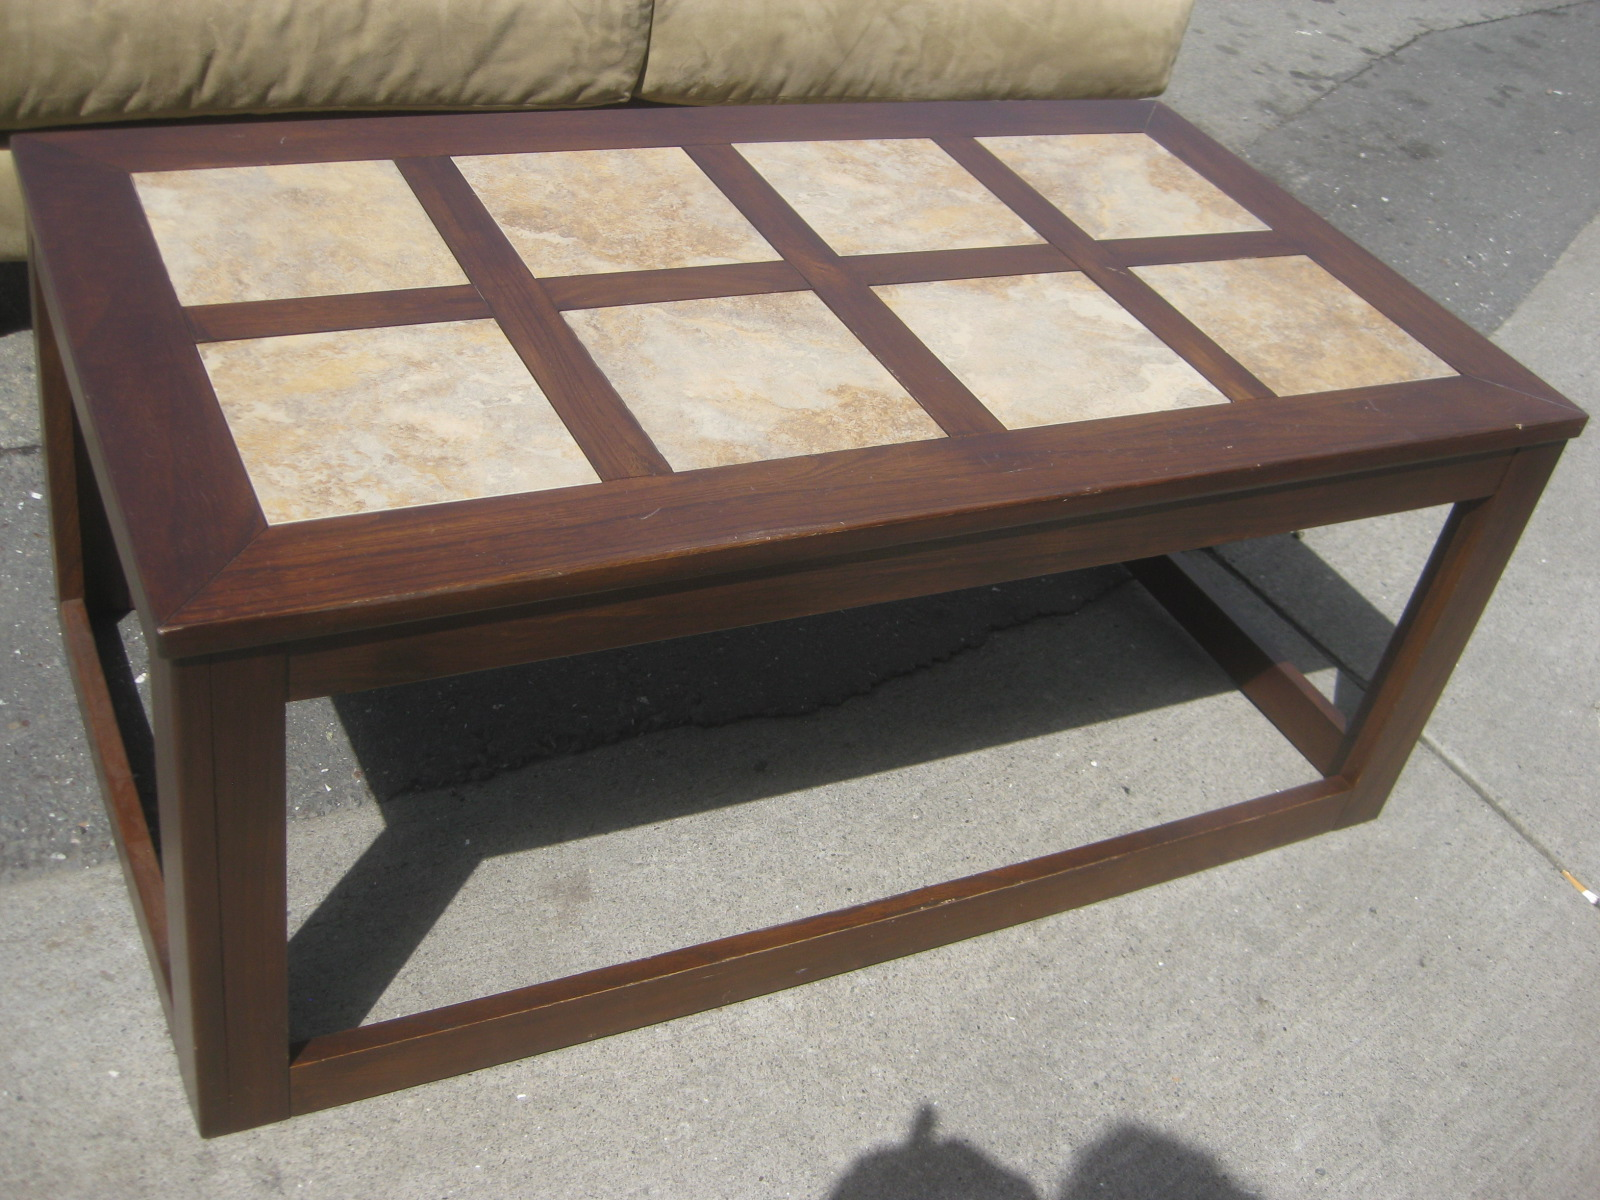 UHURU FURNITURE & COLLECTIBLES SOLD Tile top Coffee Table $20